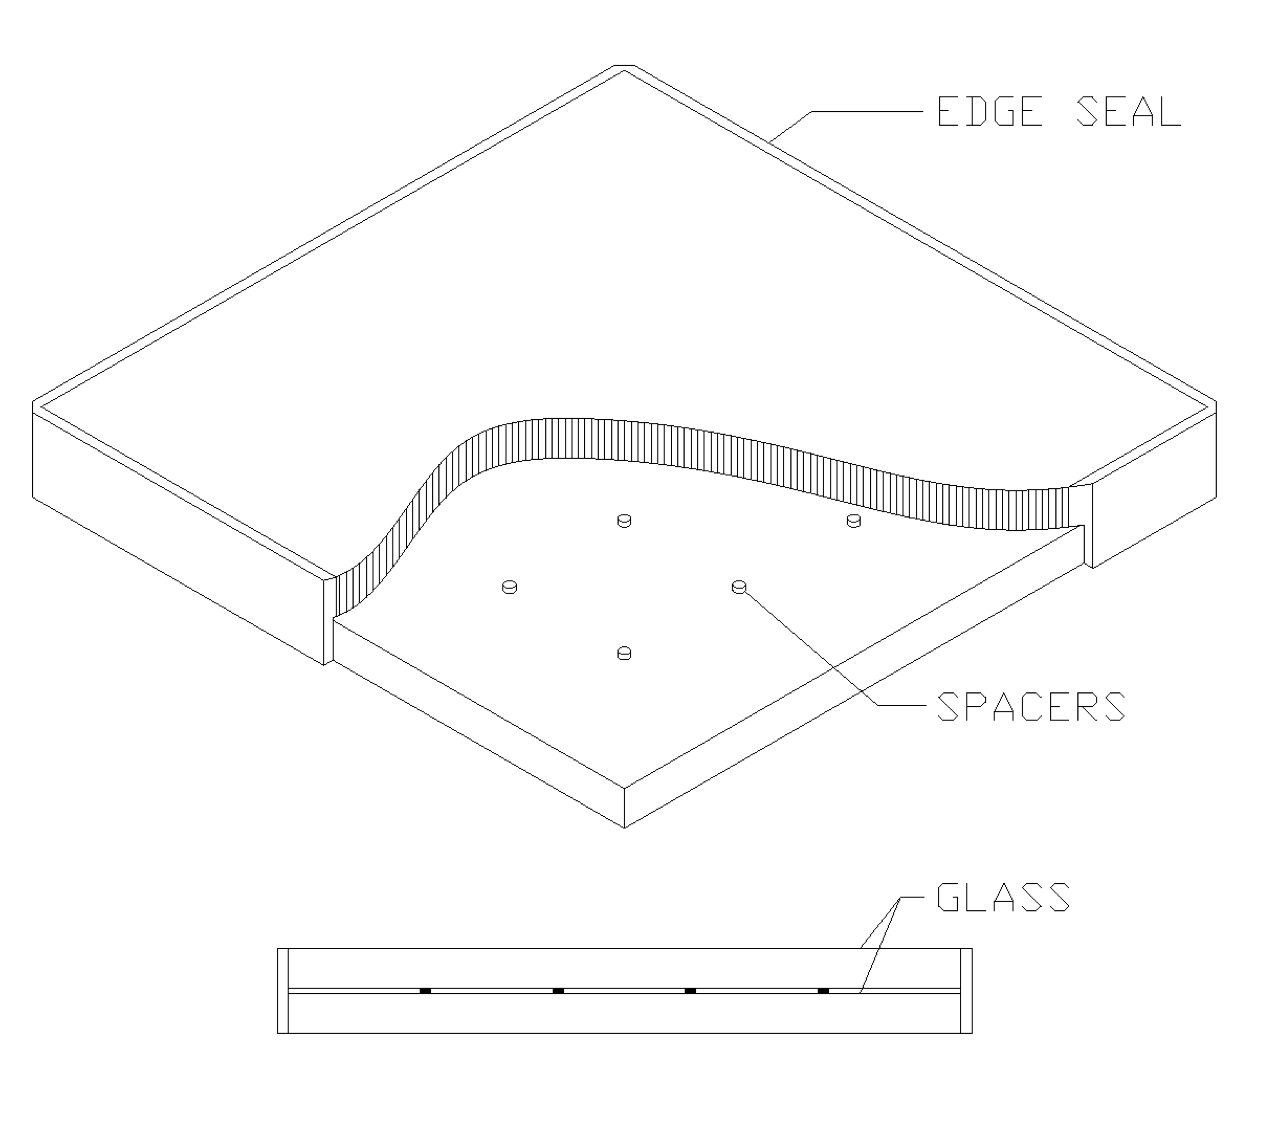 Cross-section of glass: two layers of glass separated by spacers and surrounded by an edge seal.